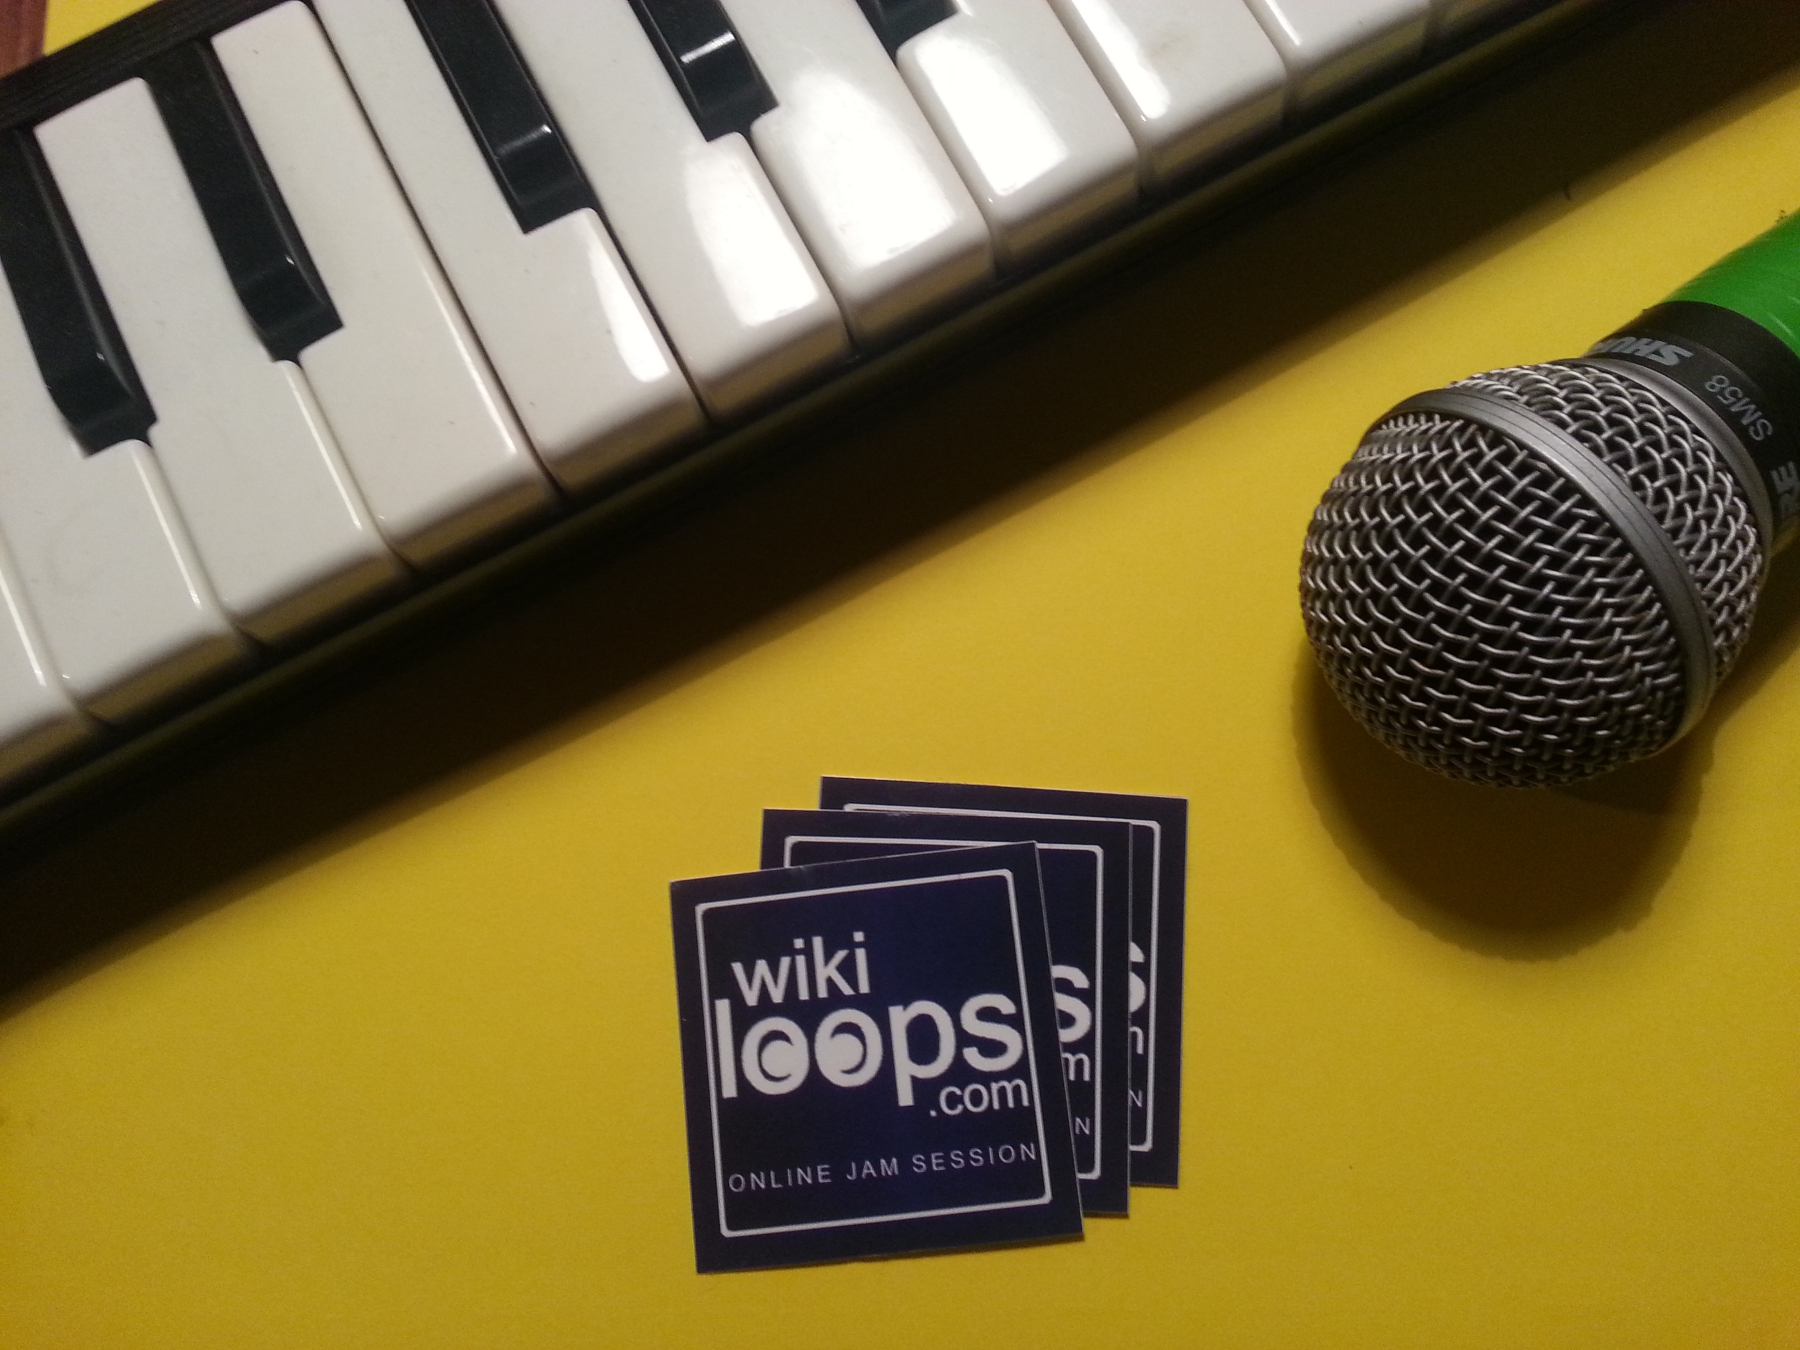 get a wikiloops promo package of stickers